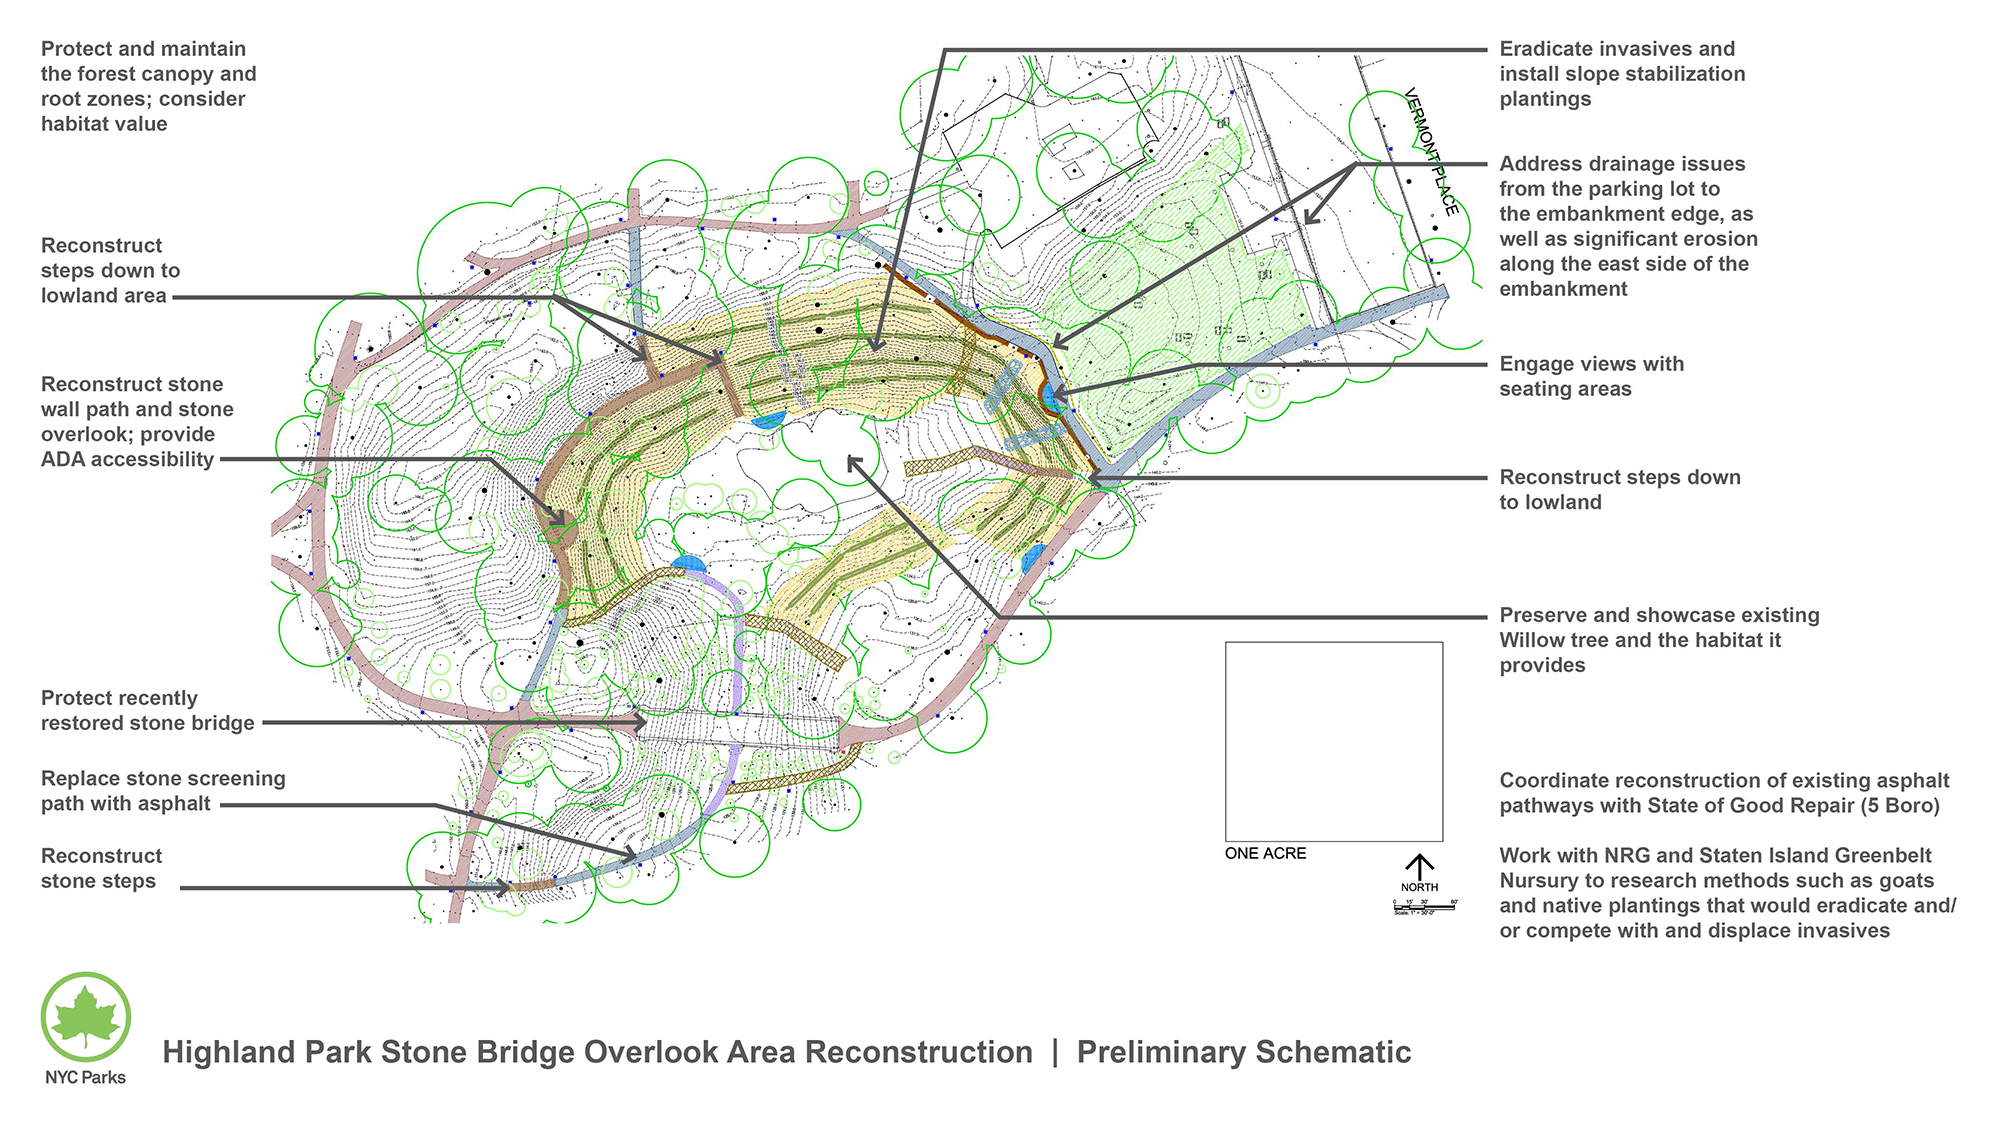 Design of Highland Park Stone Bridge Overlook Area Reconstruction